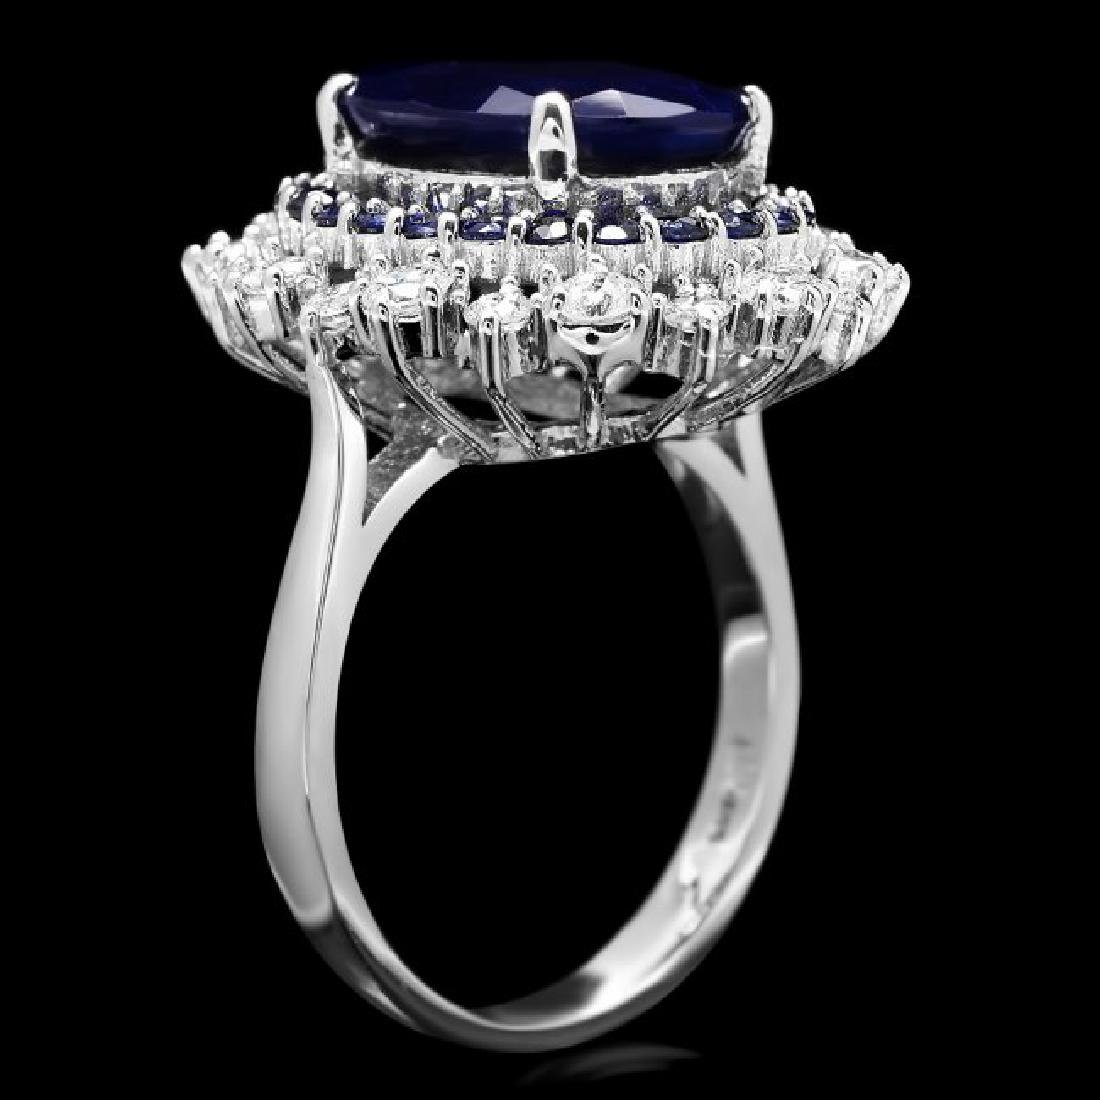 14k White Gold 7.2ct Sapphire 1.00ct Diamond Ring - 3